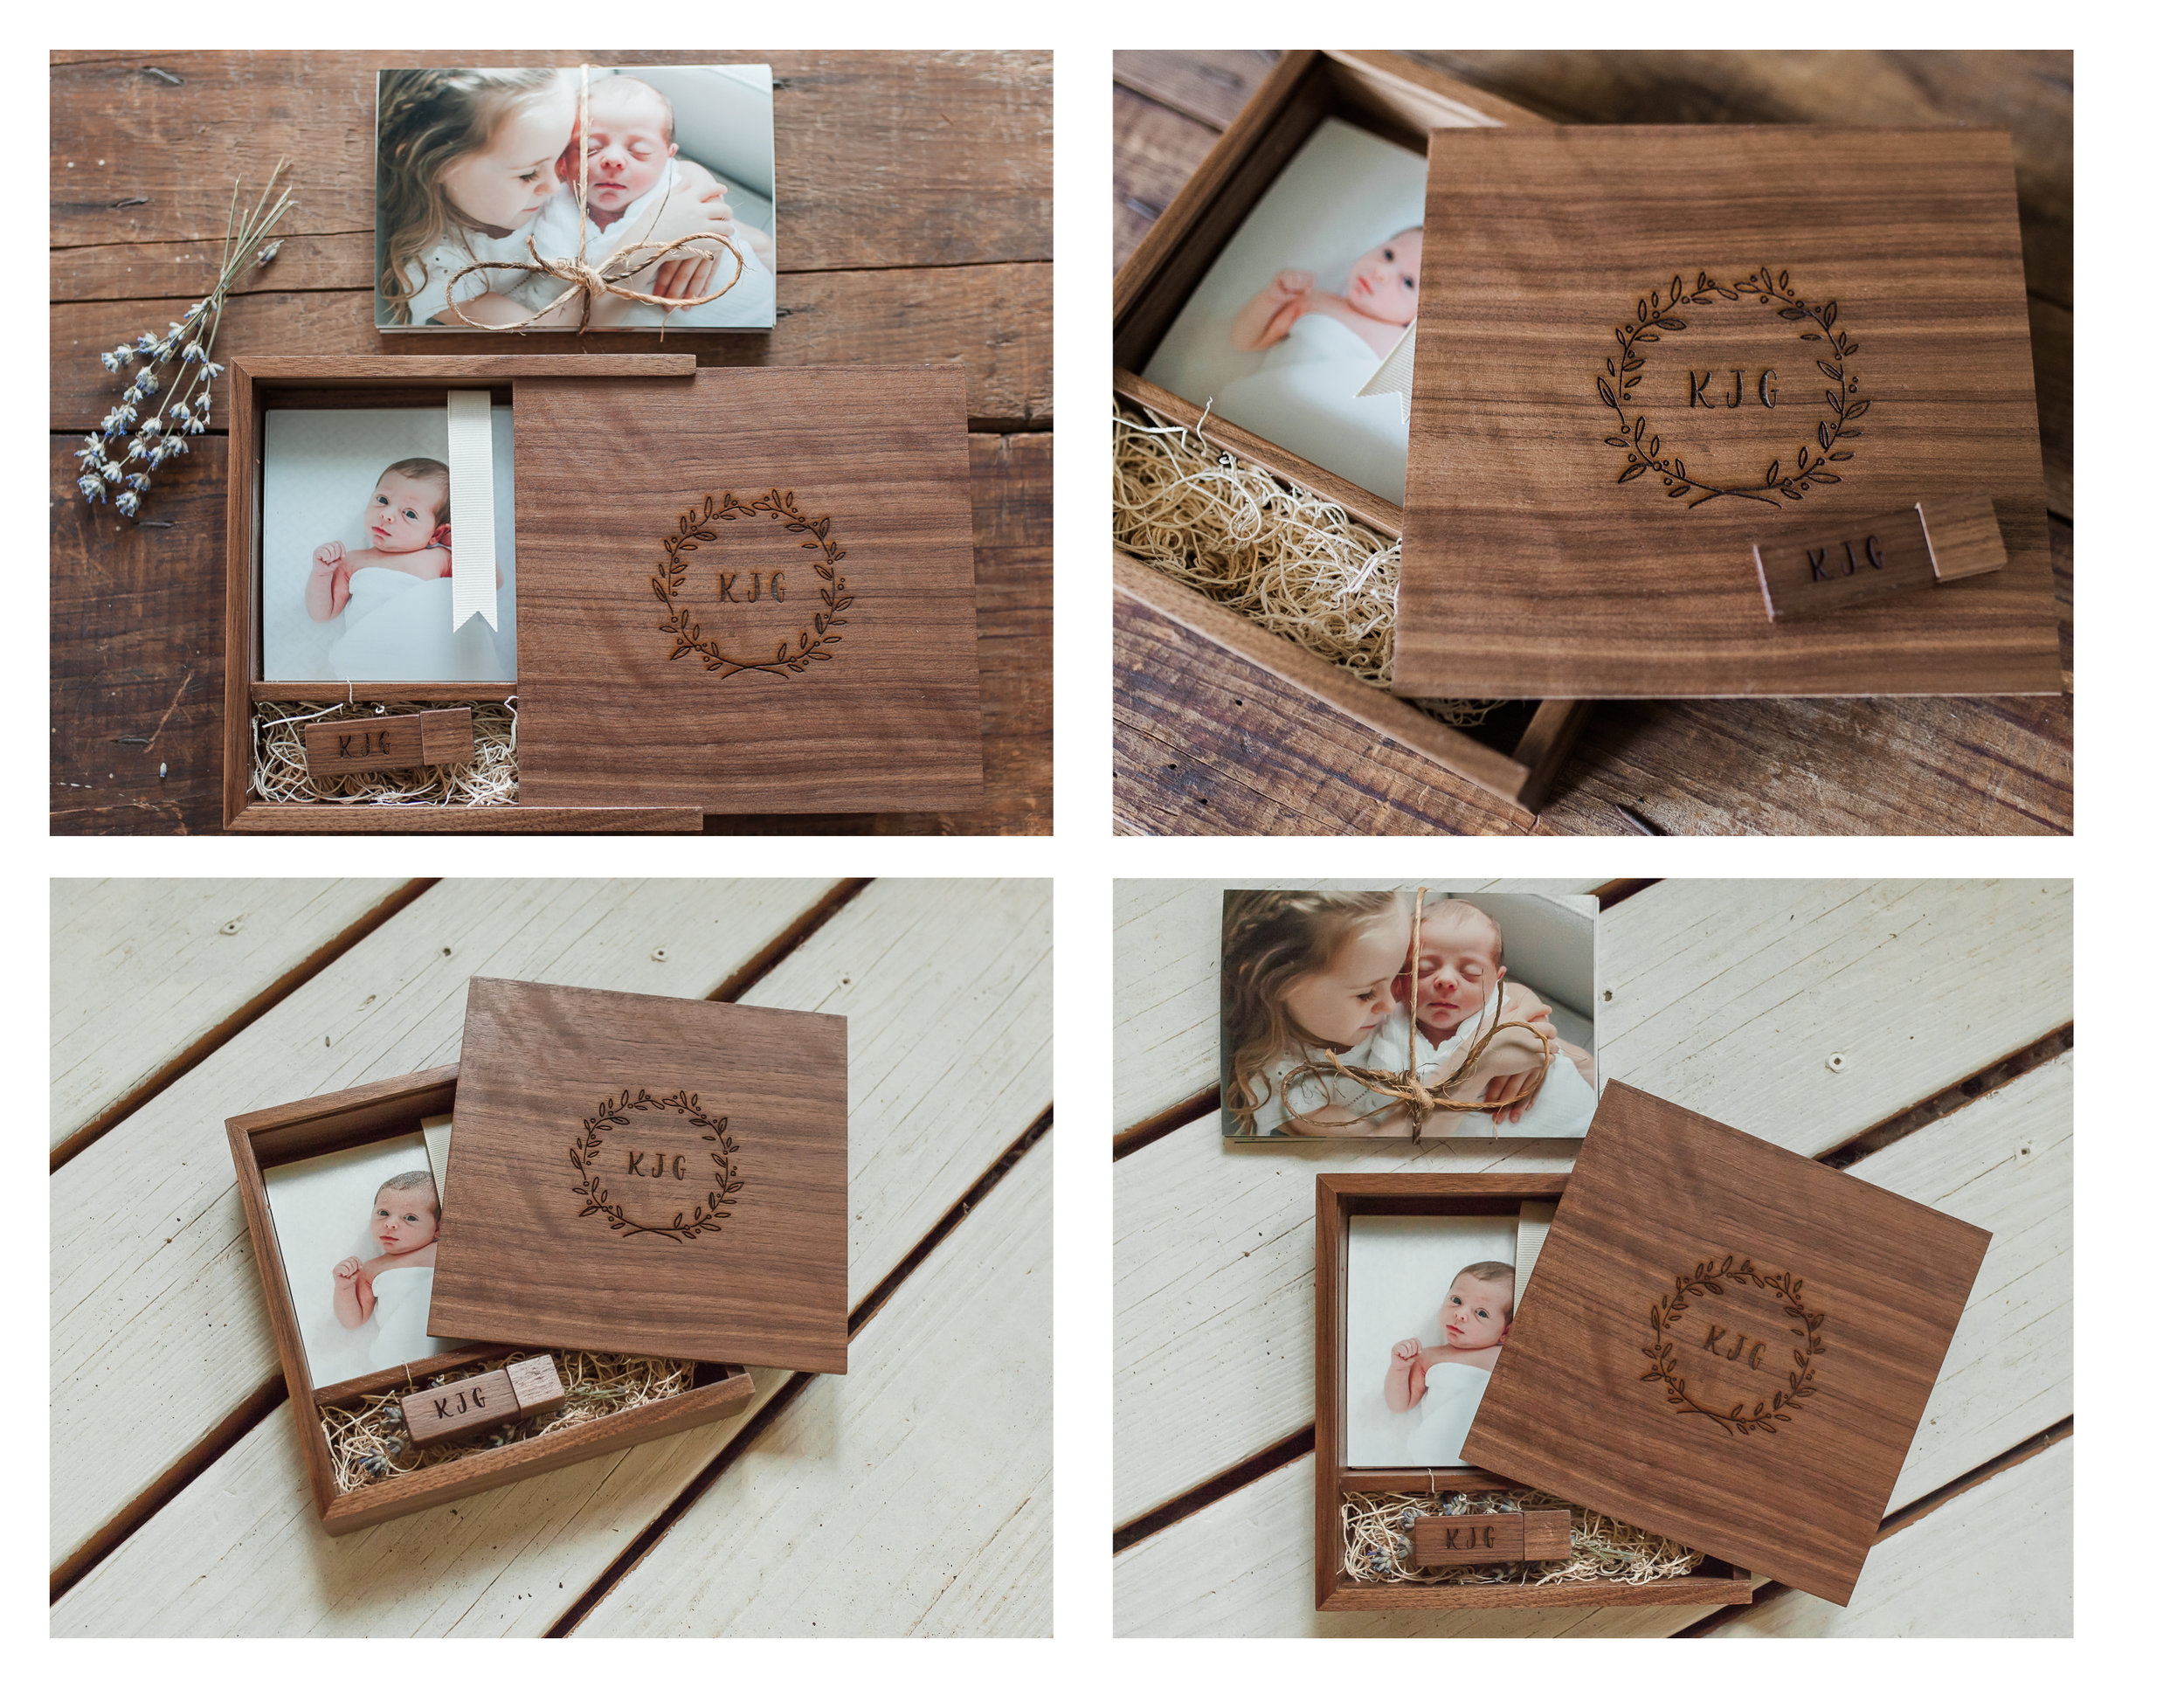 PRODUCTS PICTURED ABOVE: Custom wooden keepsake box + USB flash drive filled with 4x6 prints